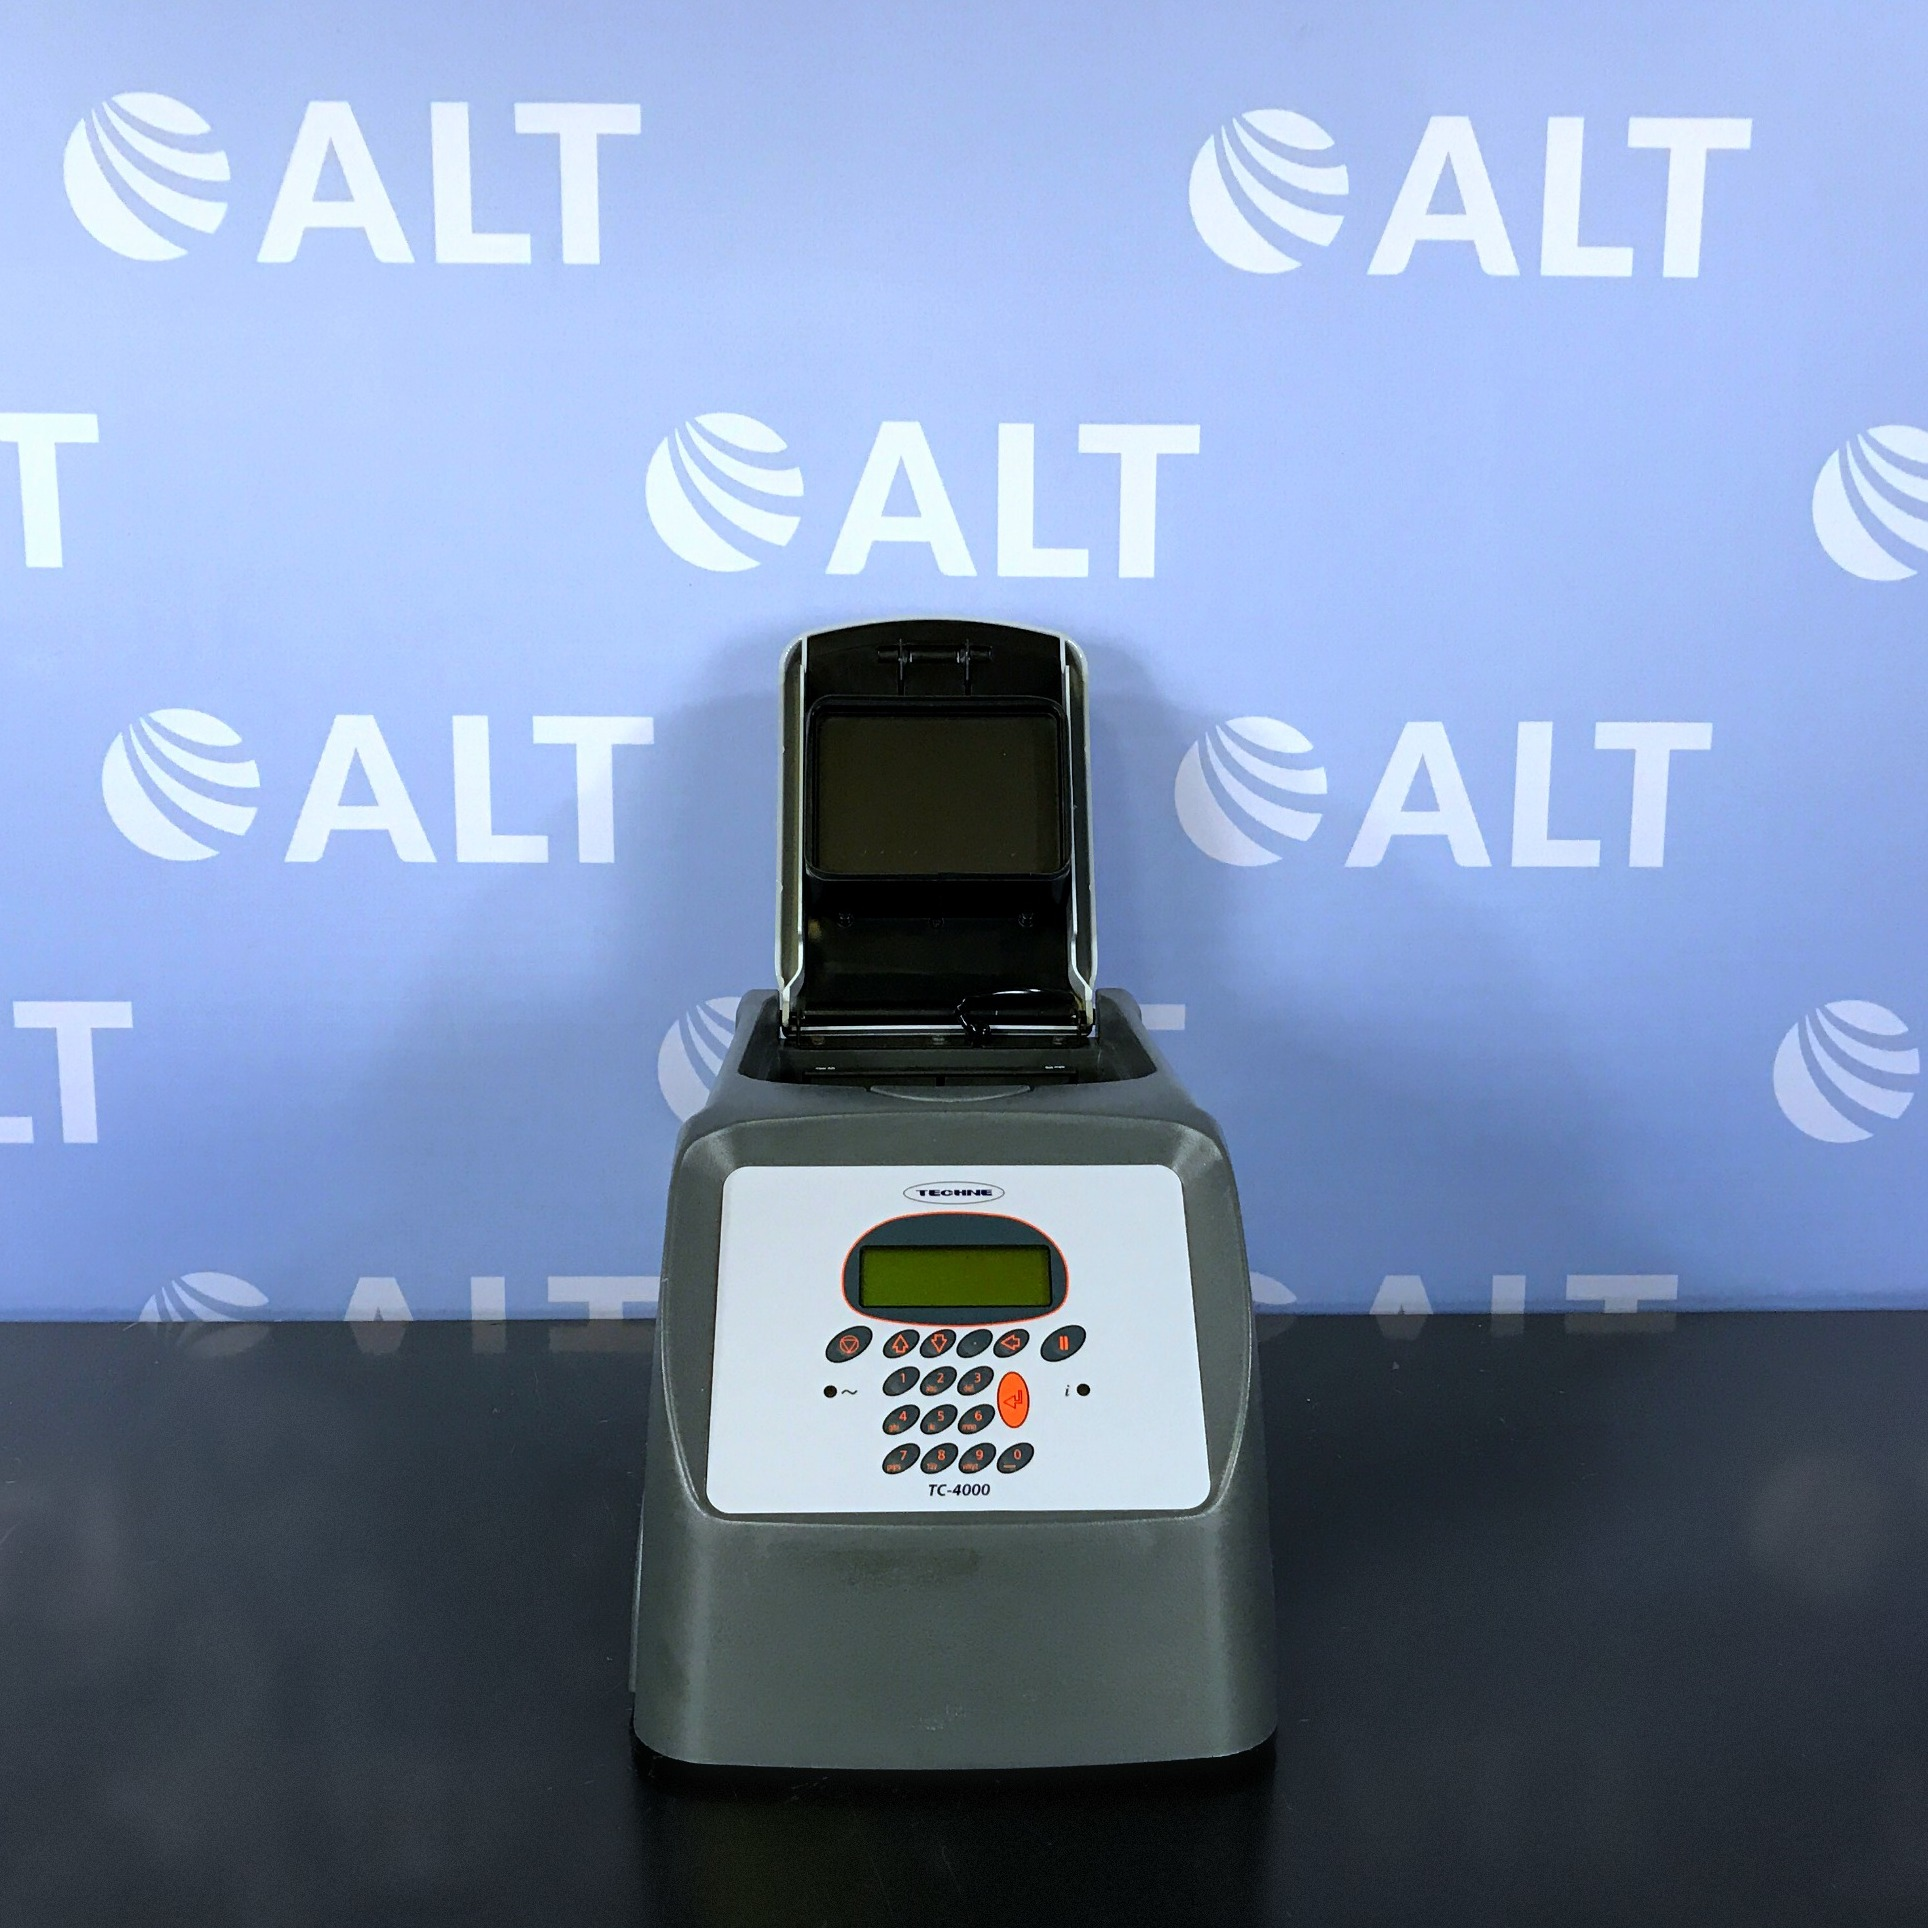 Techne TC-4000 PCR Thermal Cycler Image